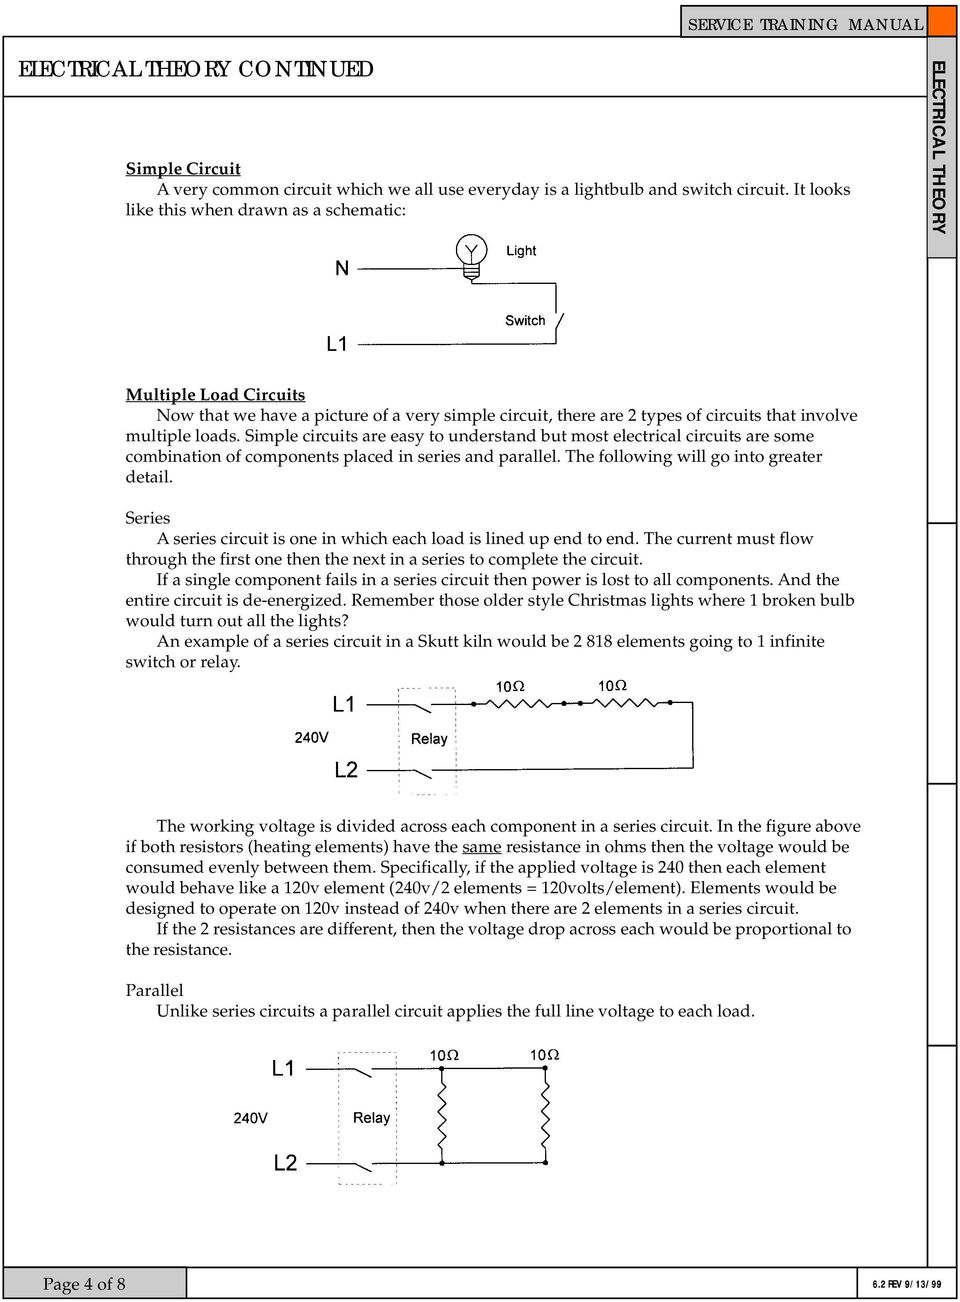 Service Training Manual Pdf Very Popular Images The Series Circuit Simple Circuits Are Easy To Understand But Most Electrical Some Combination Of Components Placed